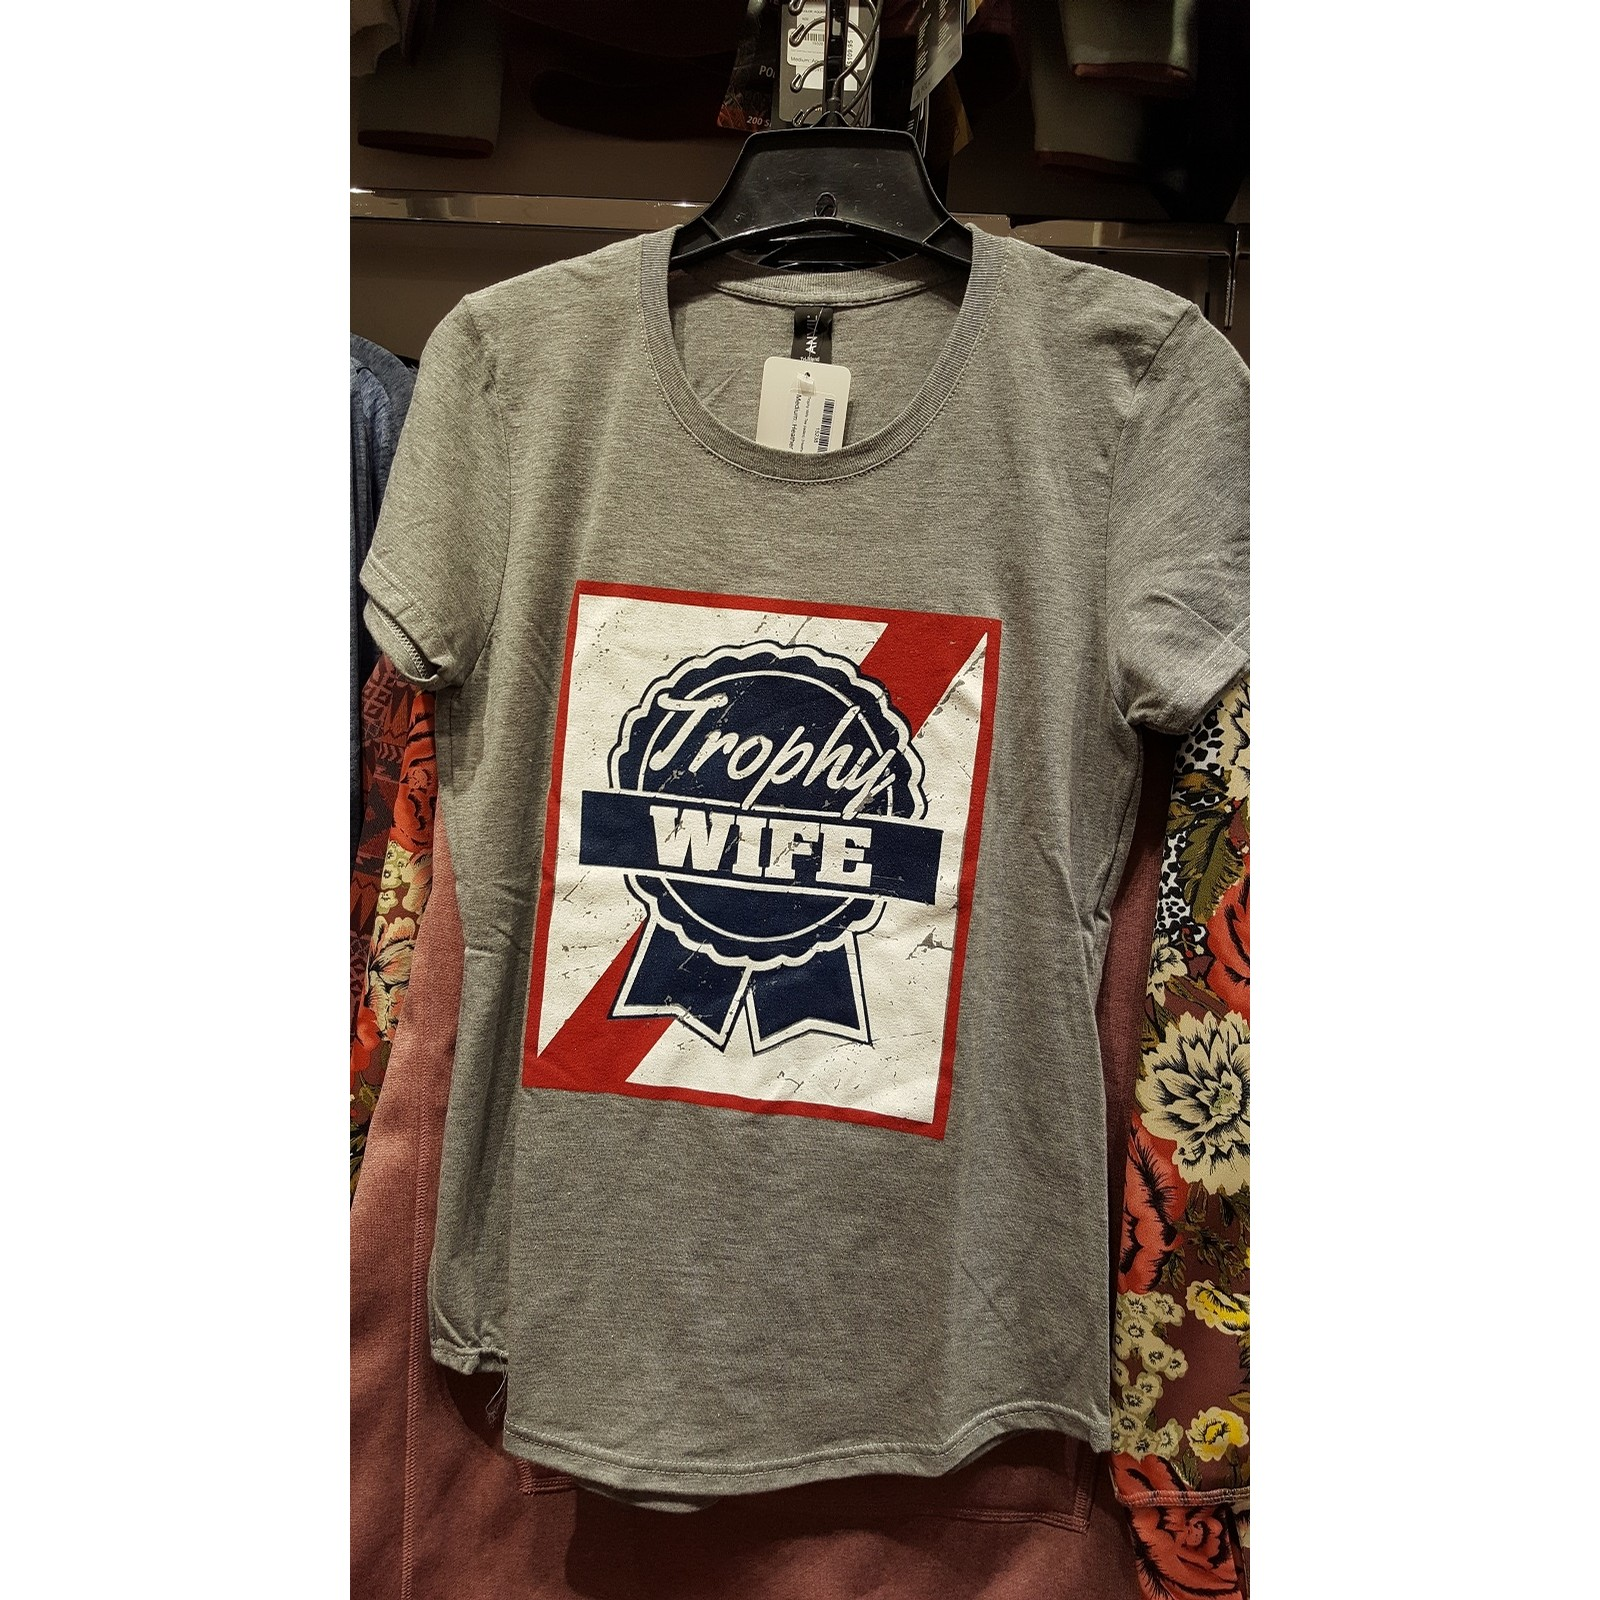 Trophy Wife Tee (ladies) (Heather Grey)